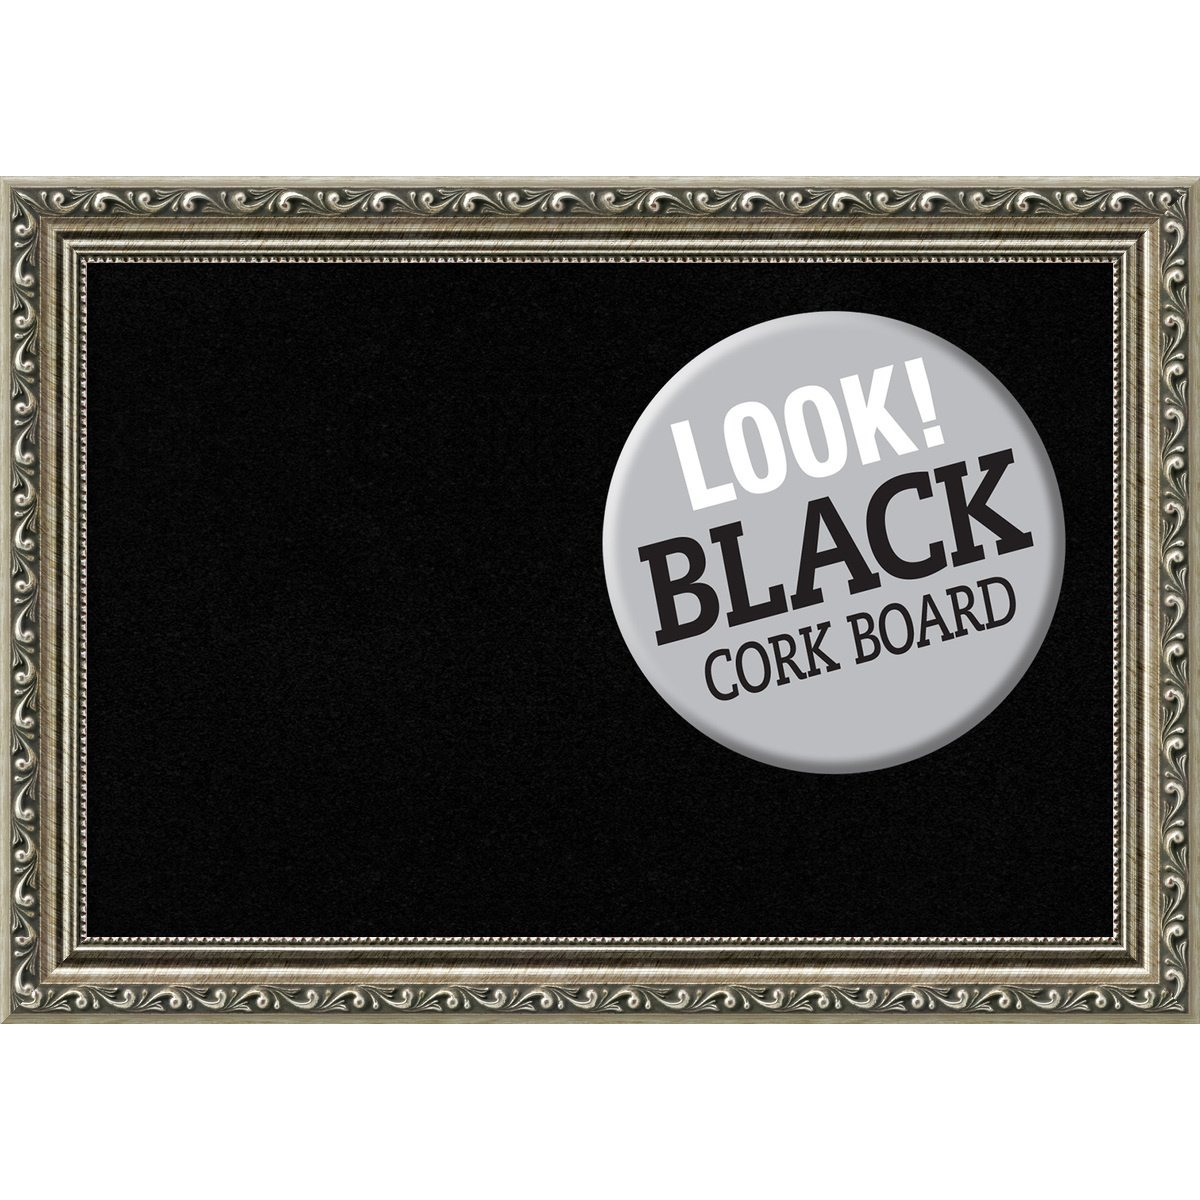 Amanti Art Framed Black Cork Board Parisian Silver: Outer Size 21 x 15'', Small by Amanti Art (Image #1)